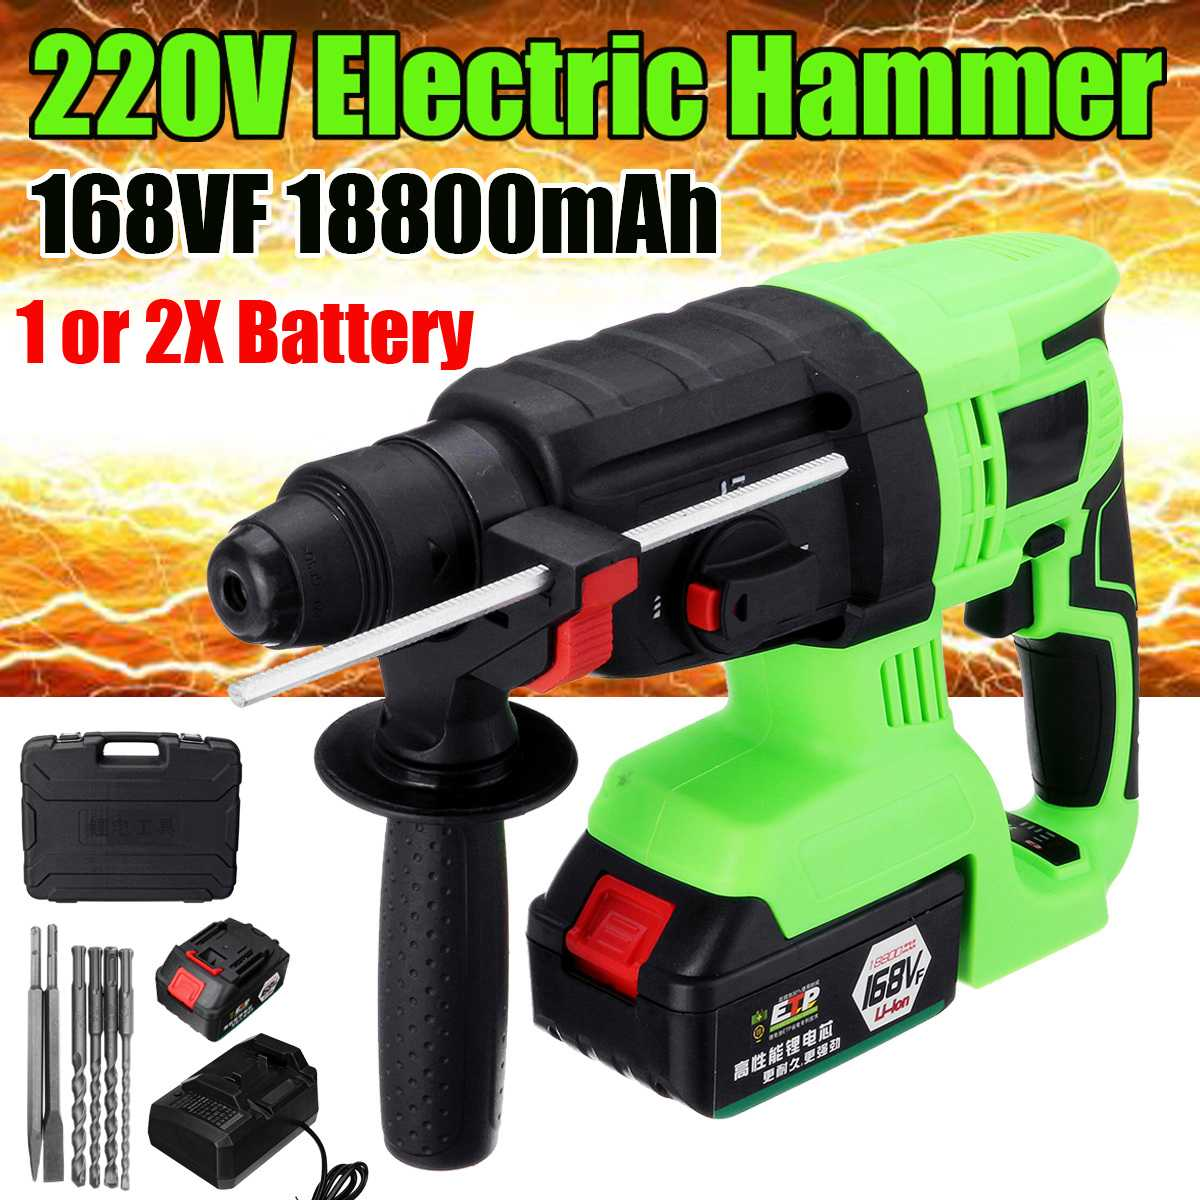 Newest 220V 18800mAh 168VF Electric Brushless Electric SDS Professional Hammer Drill with 2 Battery Power ToolsNewest 220V 18800mAh 168VF Electric Brushless Electric SDS Professional Hammer Drill with 2 Battery Power Tools